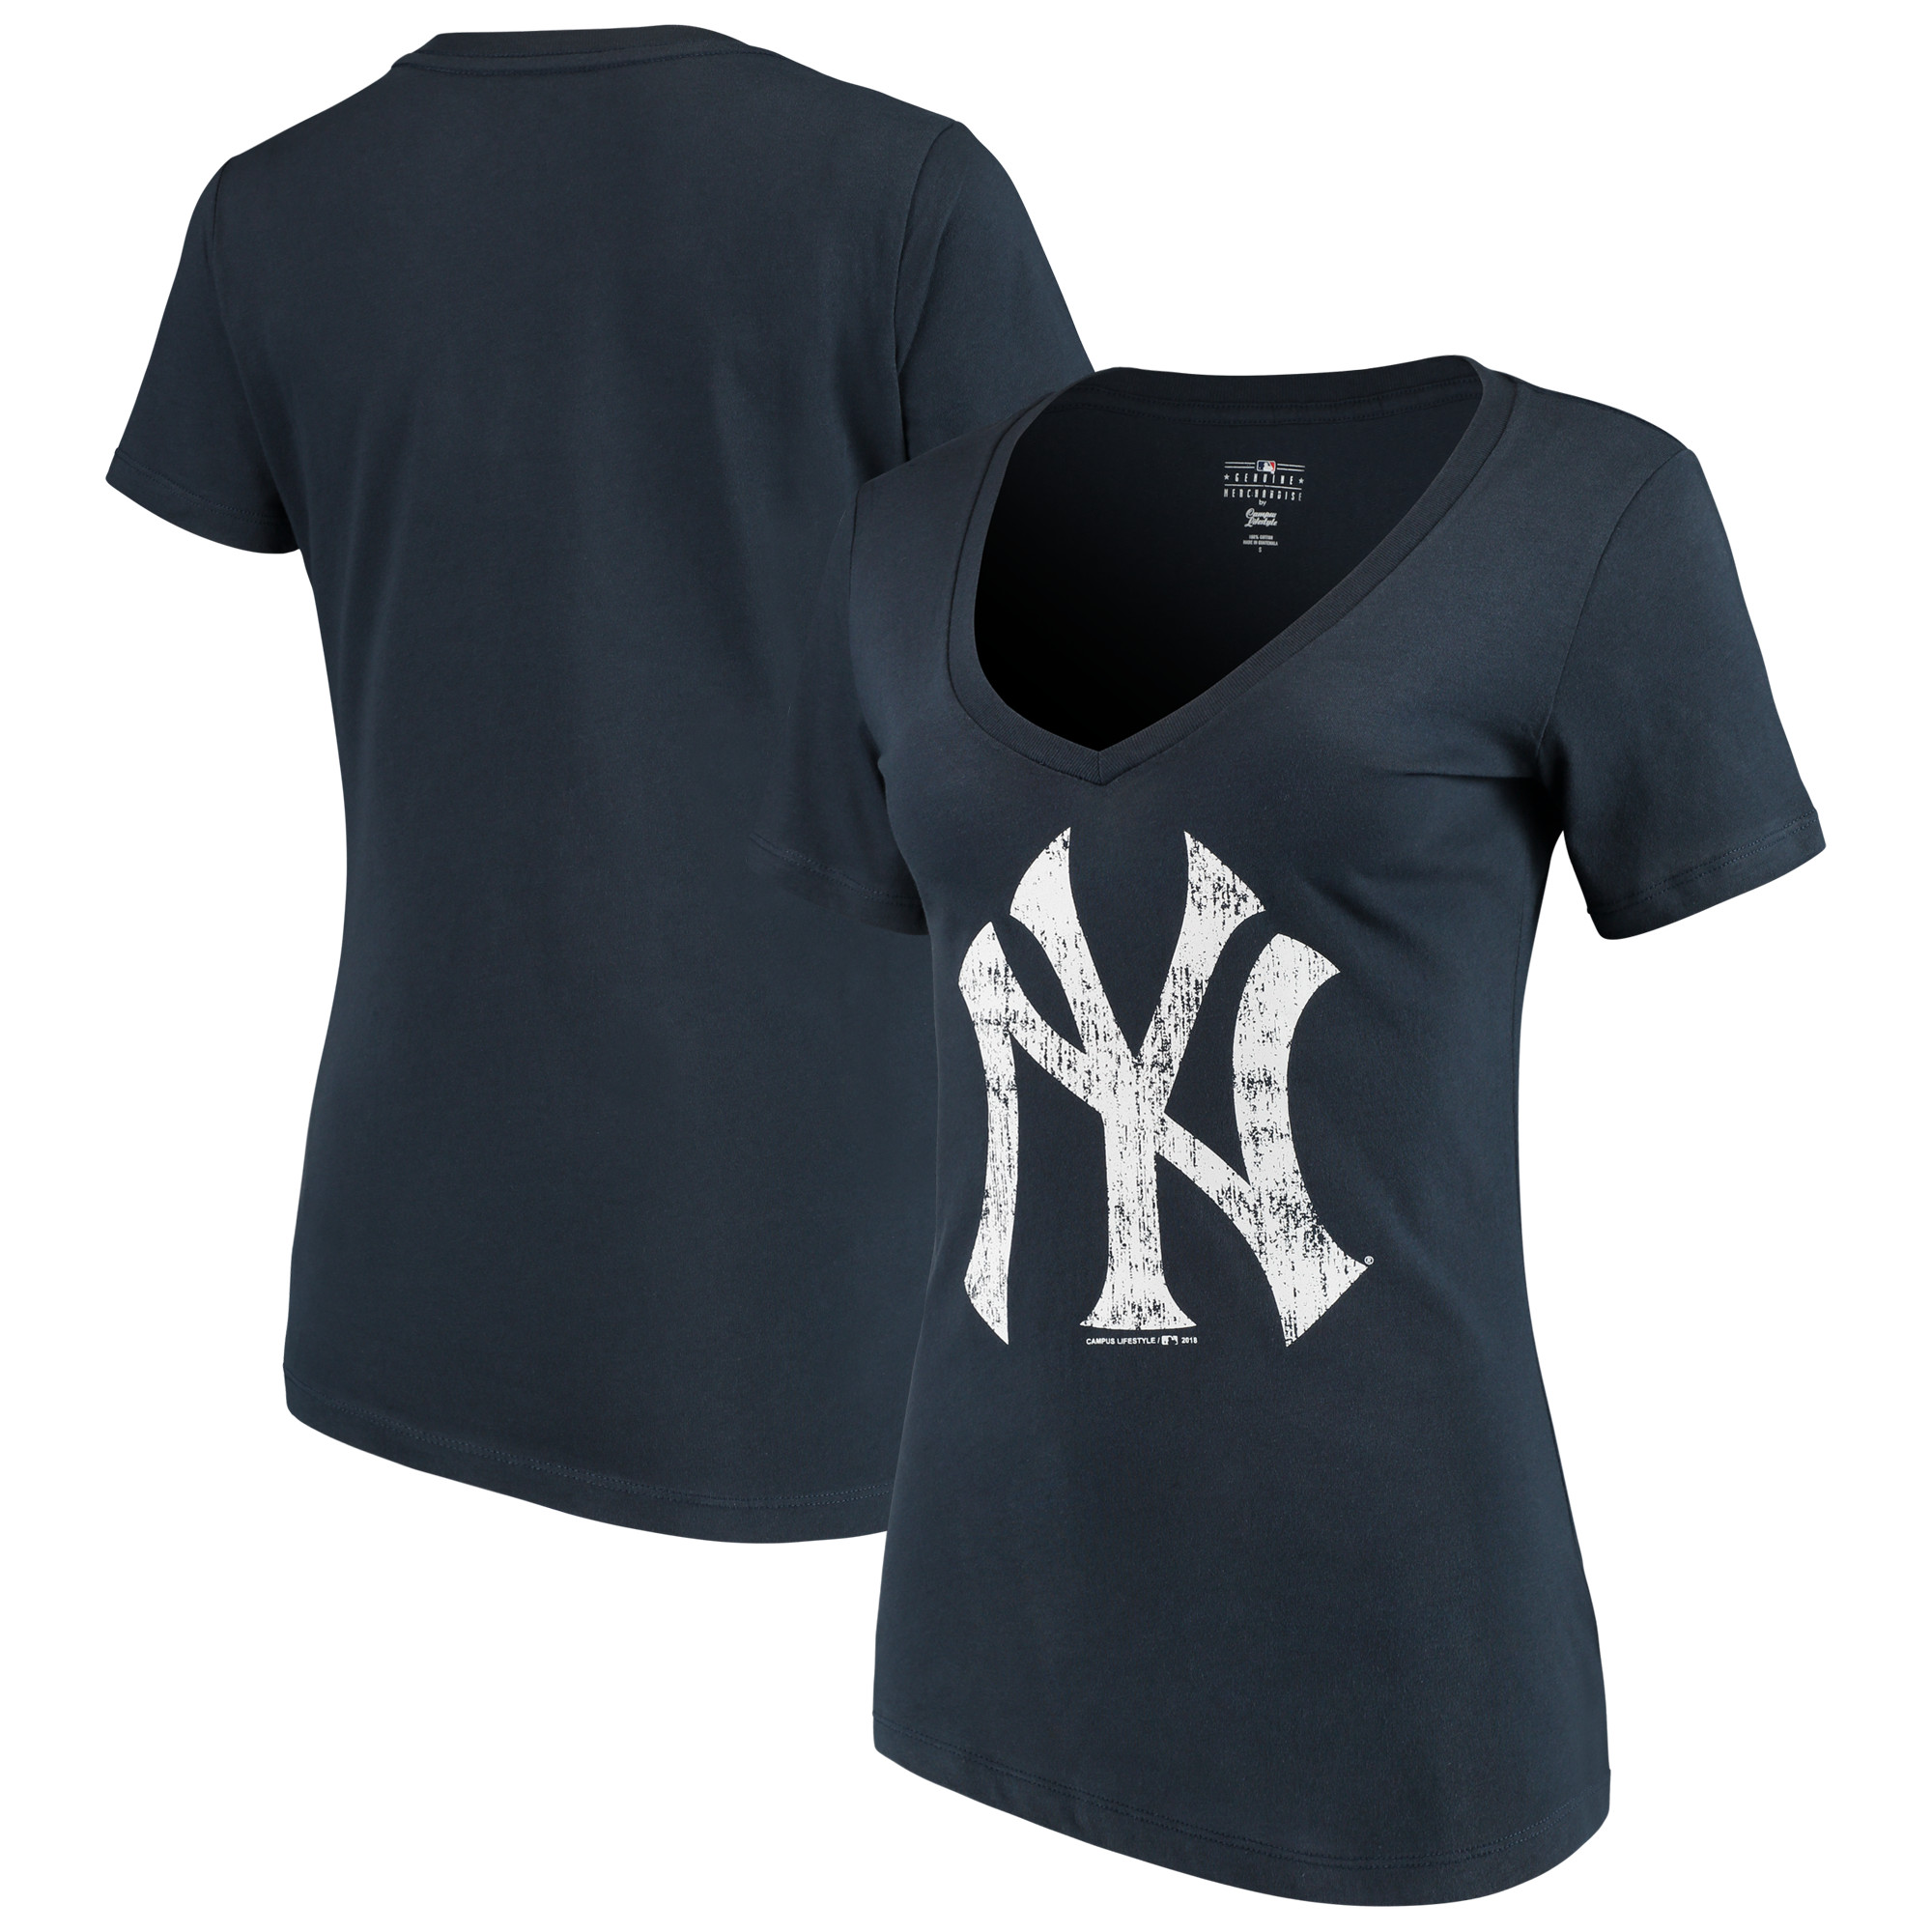 Women's 5th & Ocean by New Era Navy New York Yankees V-Neck Team T-Shirt